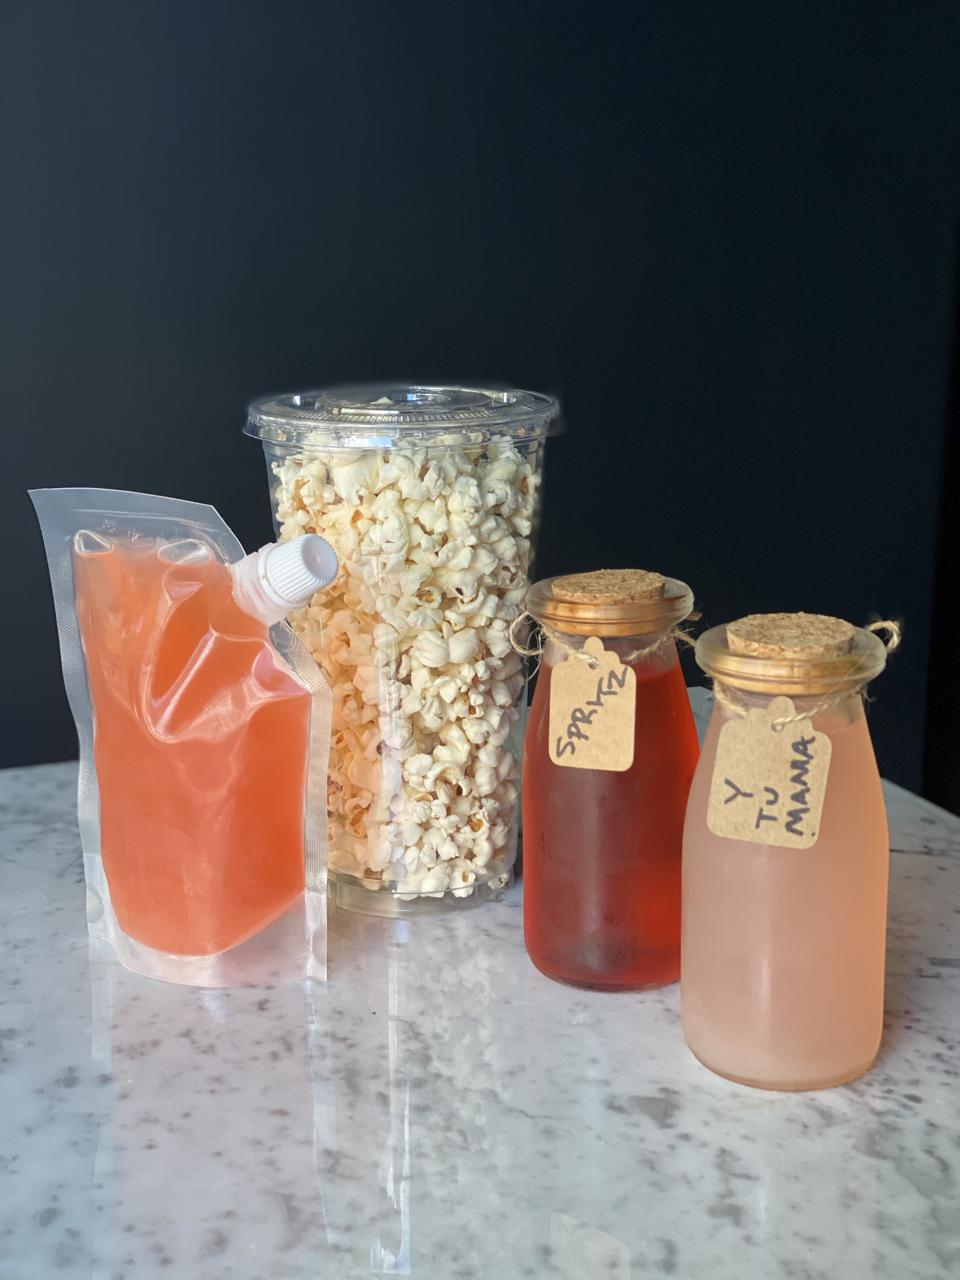 Drinks and popcorn to go